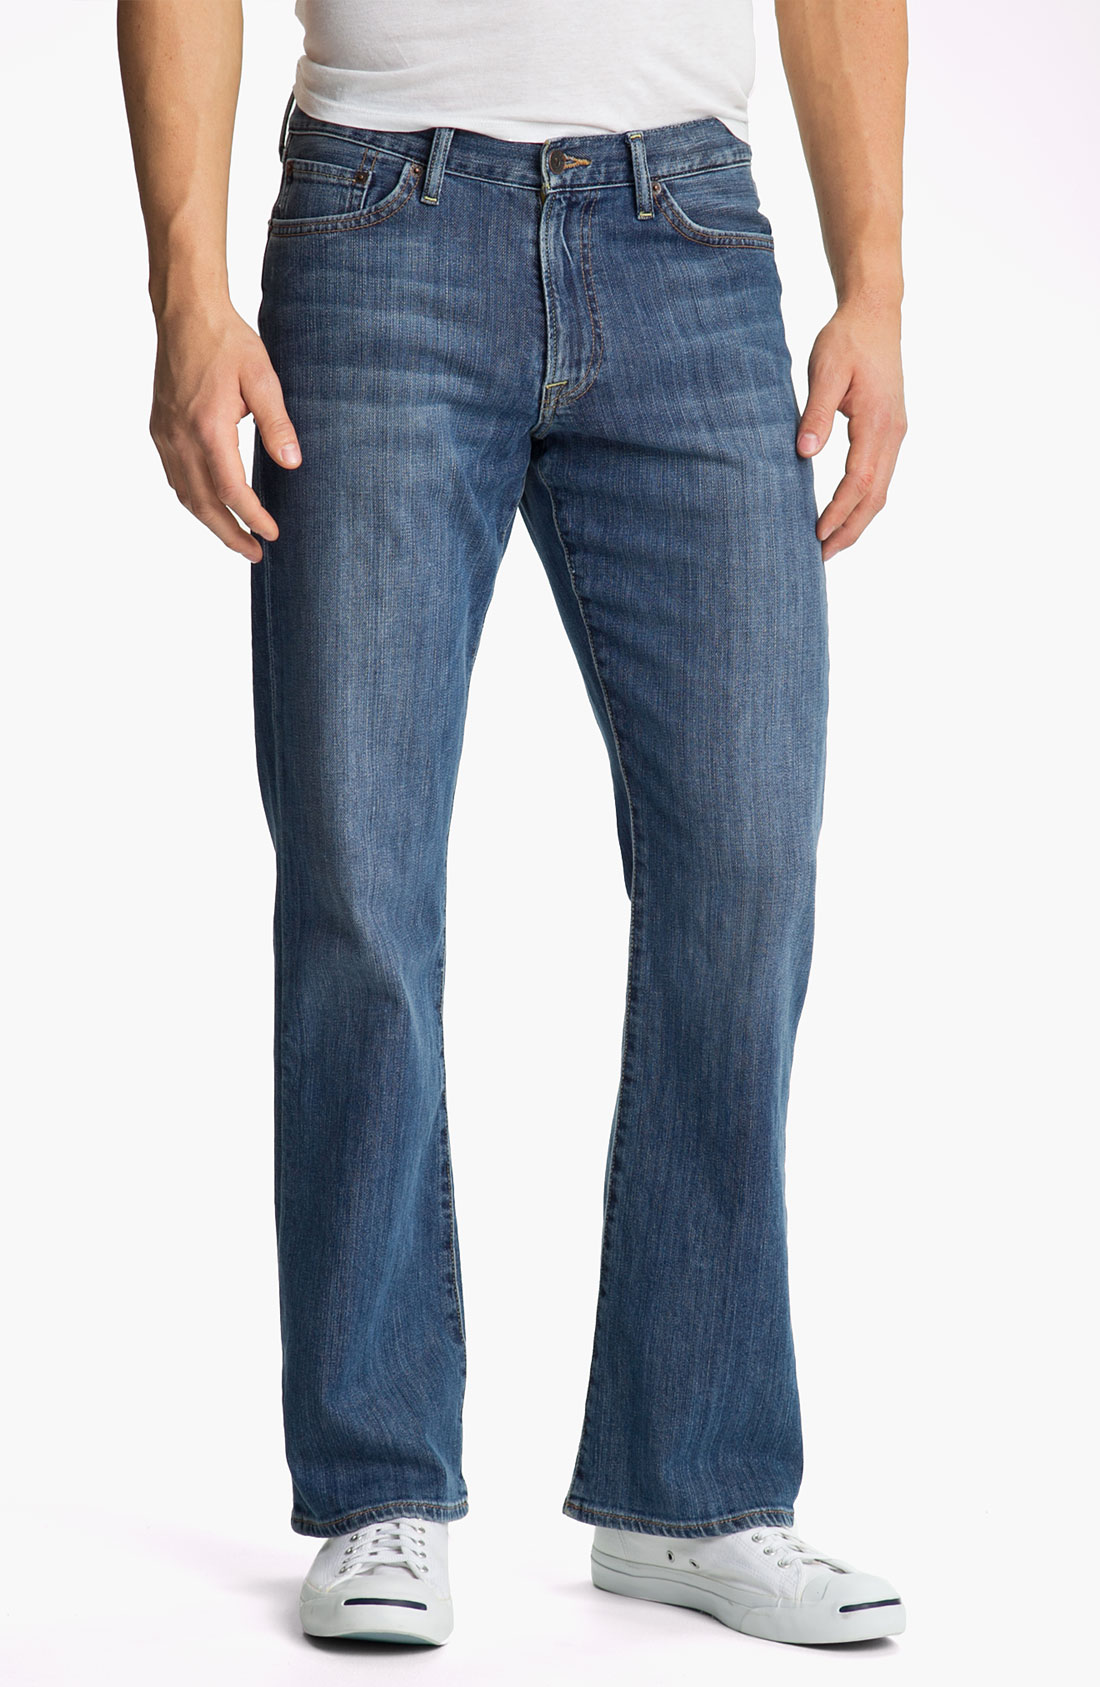 Lucky Brand Mens Jeans Review